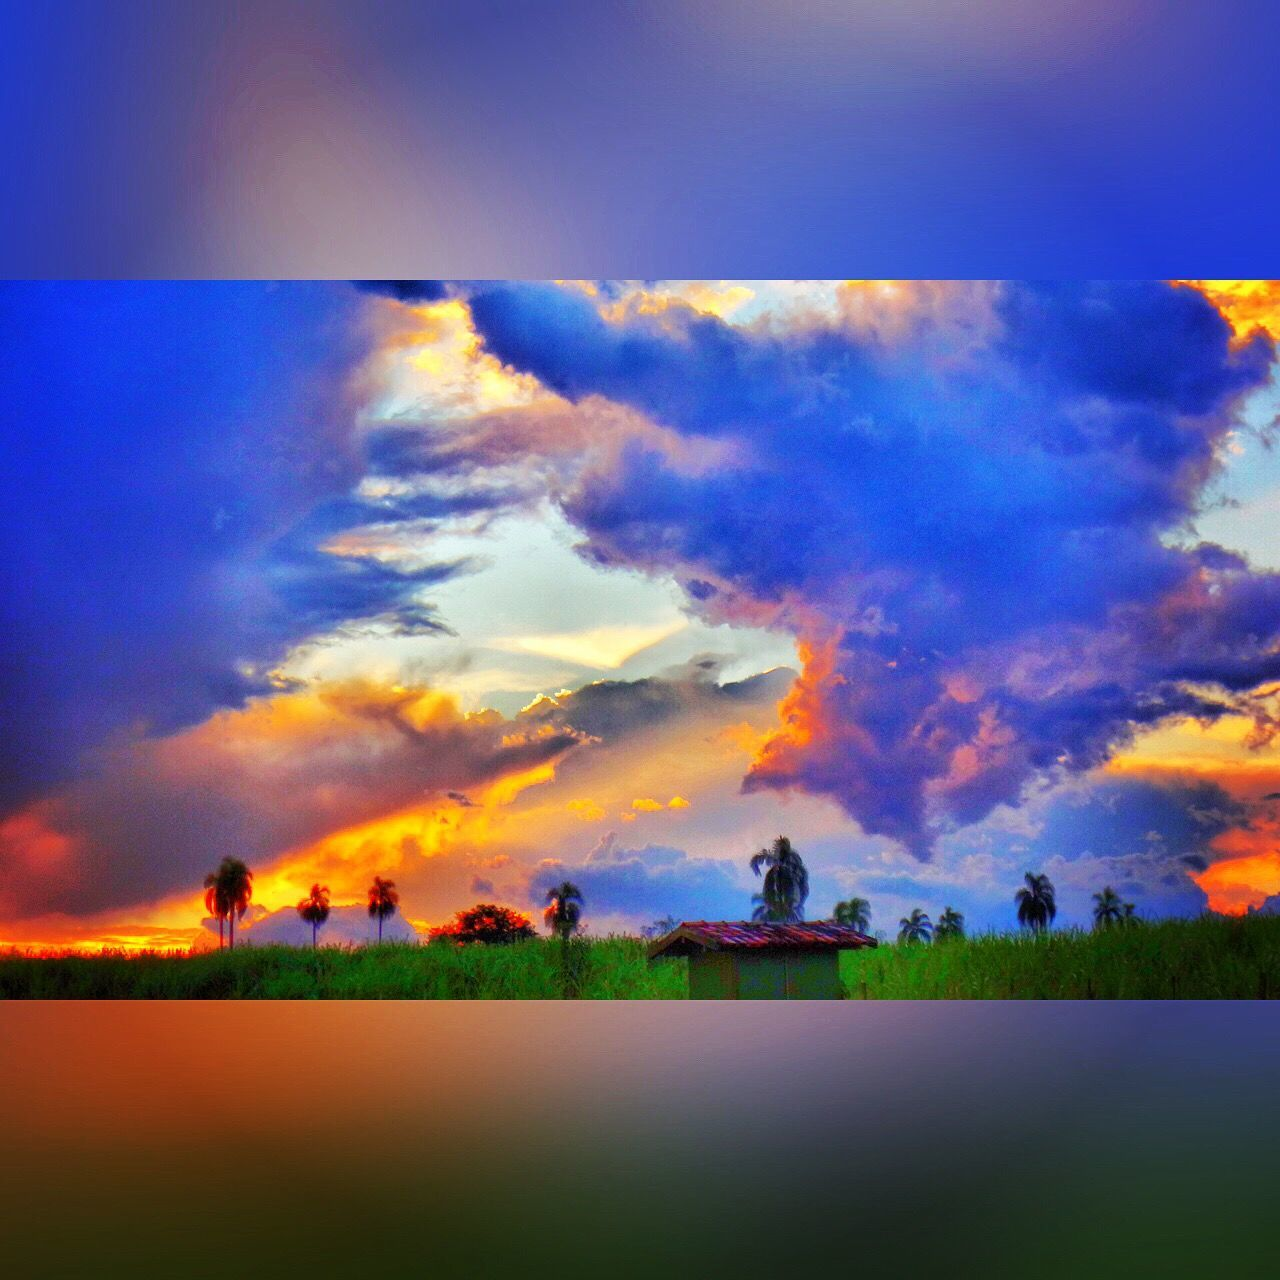 sky, cloud - sky, scenics, outdoors, field, nature, beauty in nature, tranquil scene, tranquility, landscape, sunset, no people, built structure, water, building exterior, day, architecture, grass, tree